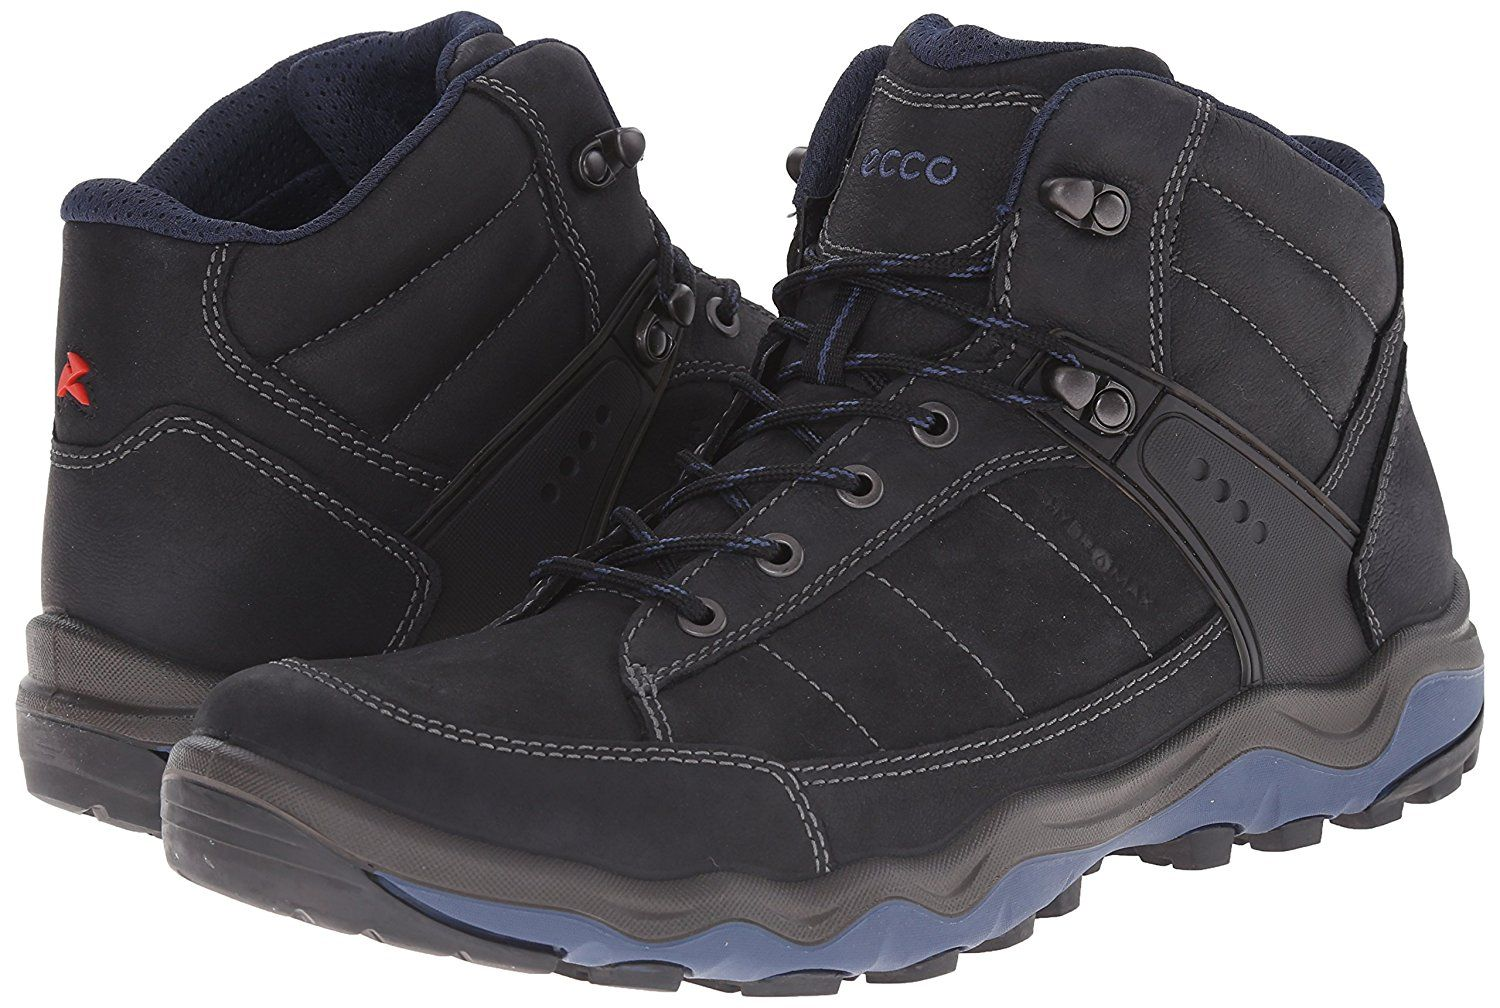 fa5650979f7 ECCO Men's Ulterra Dhaka Mid Boot ** Check this awesome product by ...